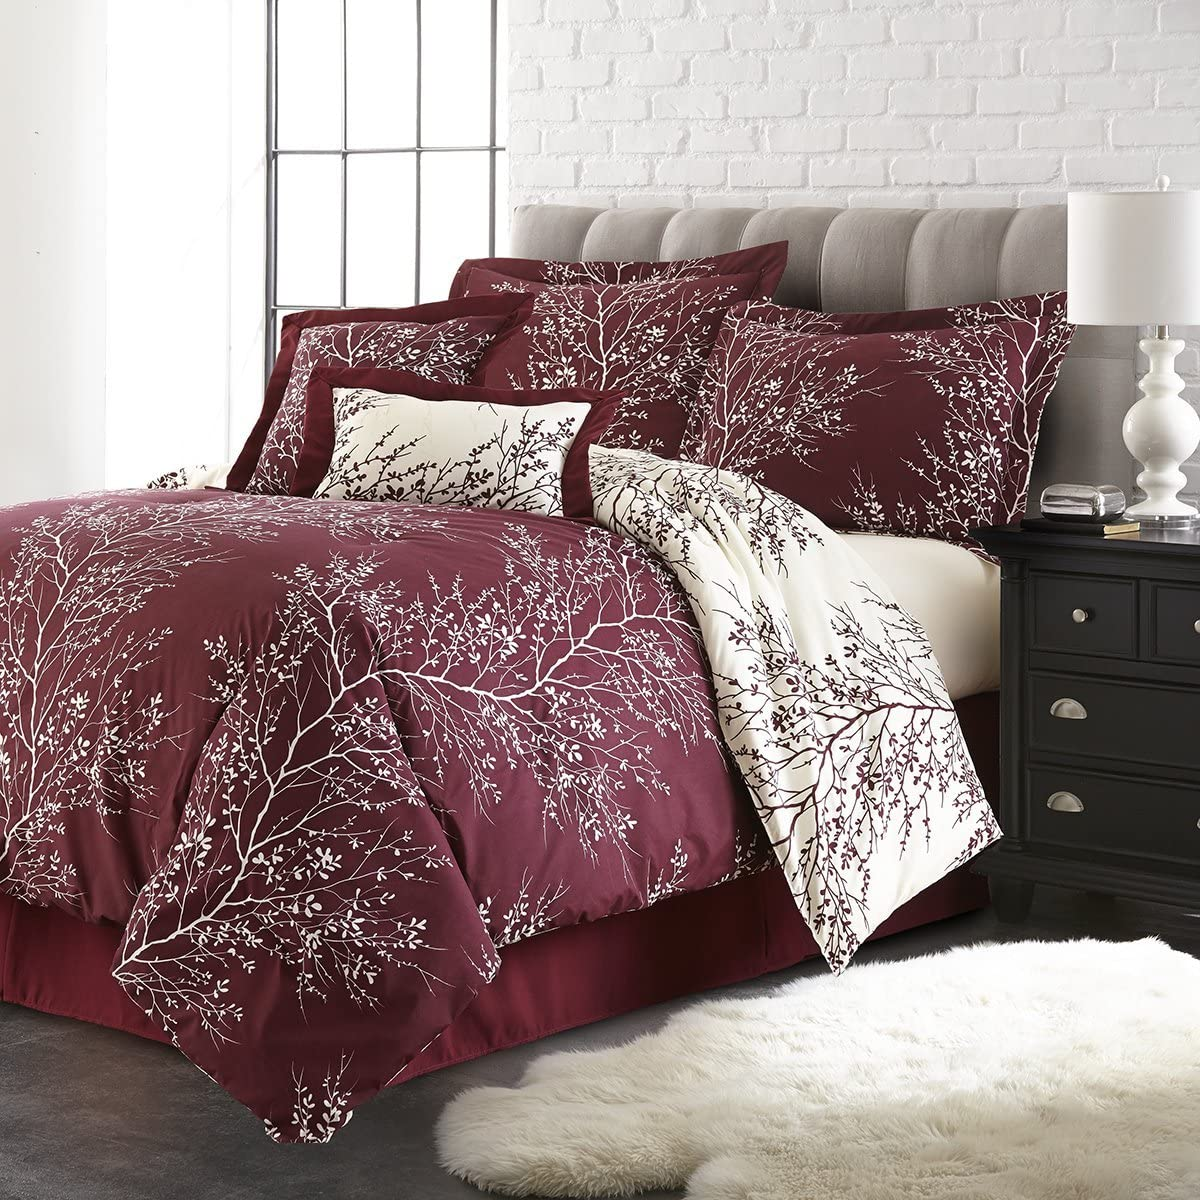 Spirit Linen Hotel 5Th Ave 6-Piece Foliage Collection Plush Reversible Comforter Set, Queen, Burgundy/Ivory